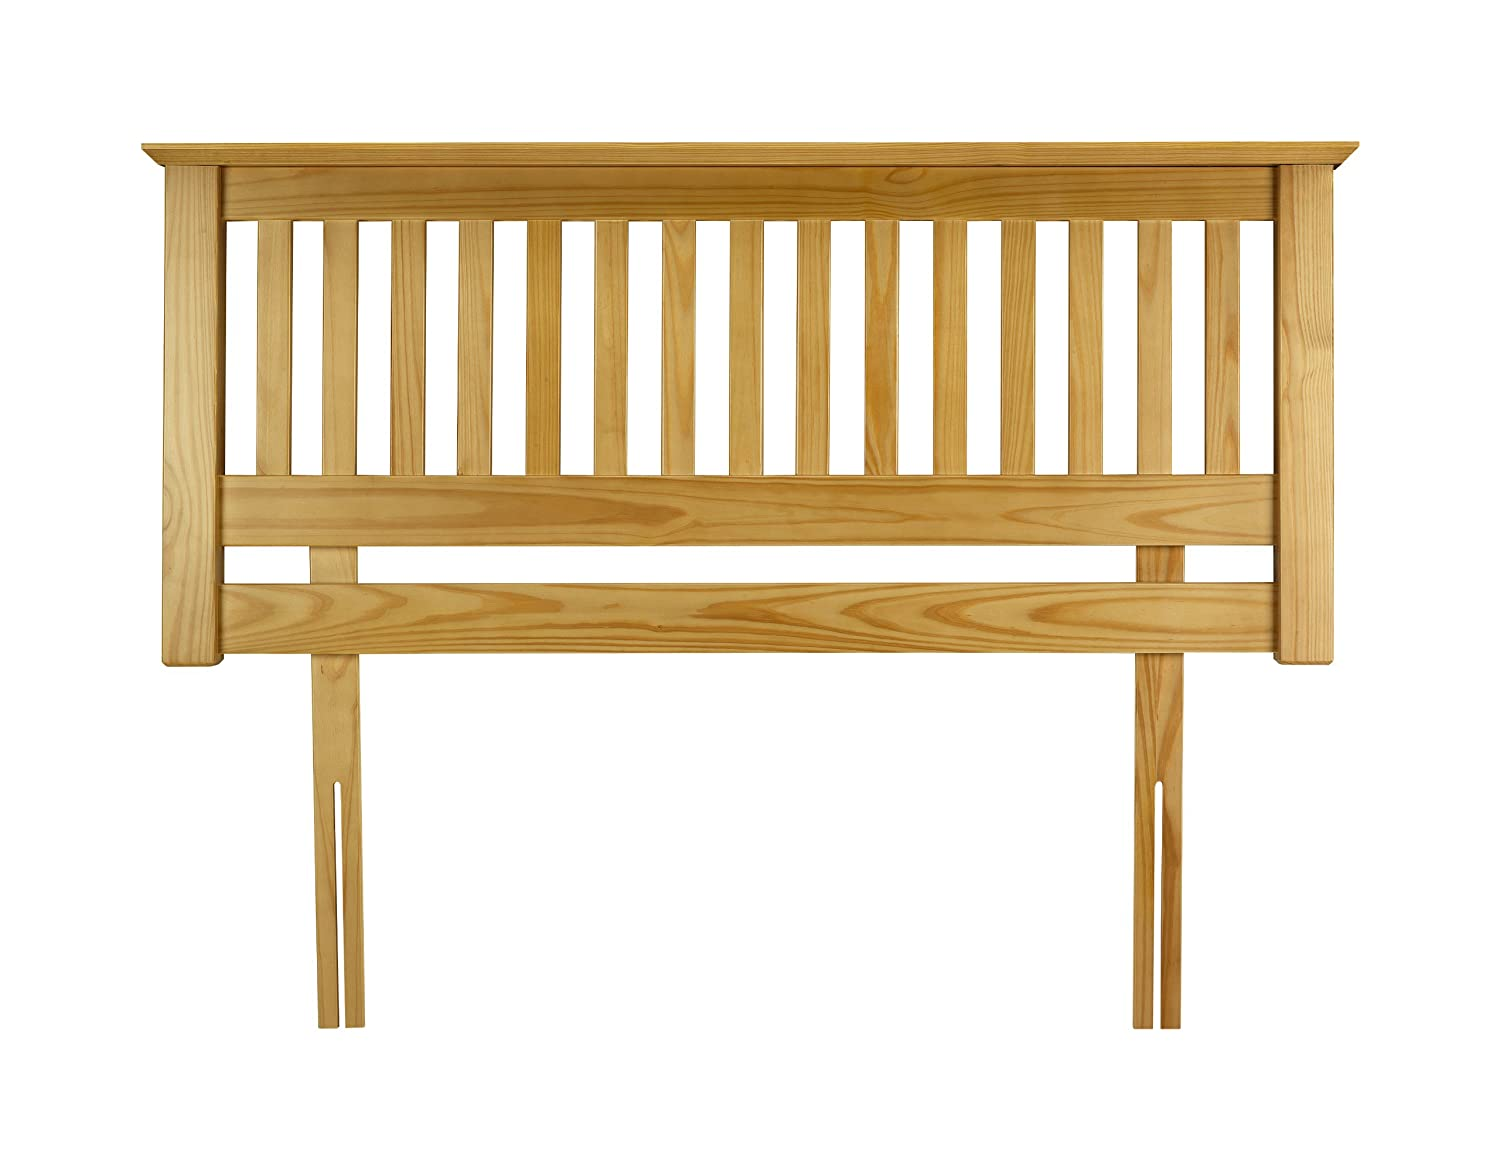 oak and bed home design headboard wood for solid uk reclaimed valuable footboards the footboard dazzling in headboards staggering pinterest beds queen